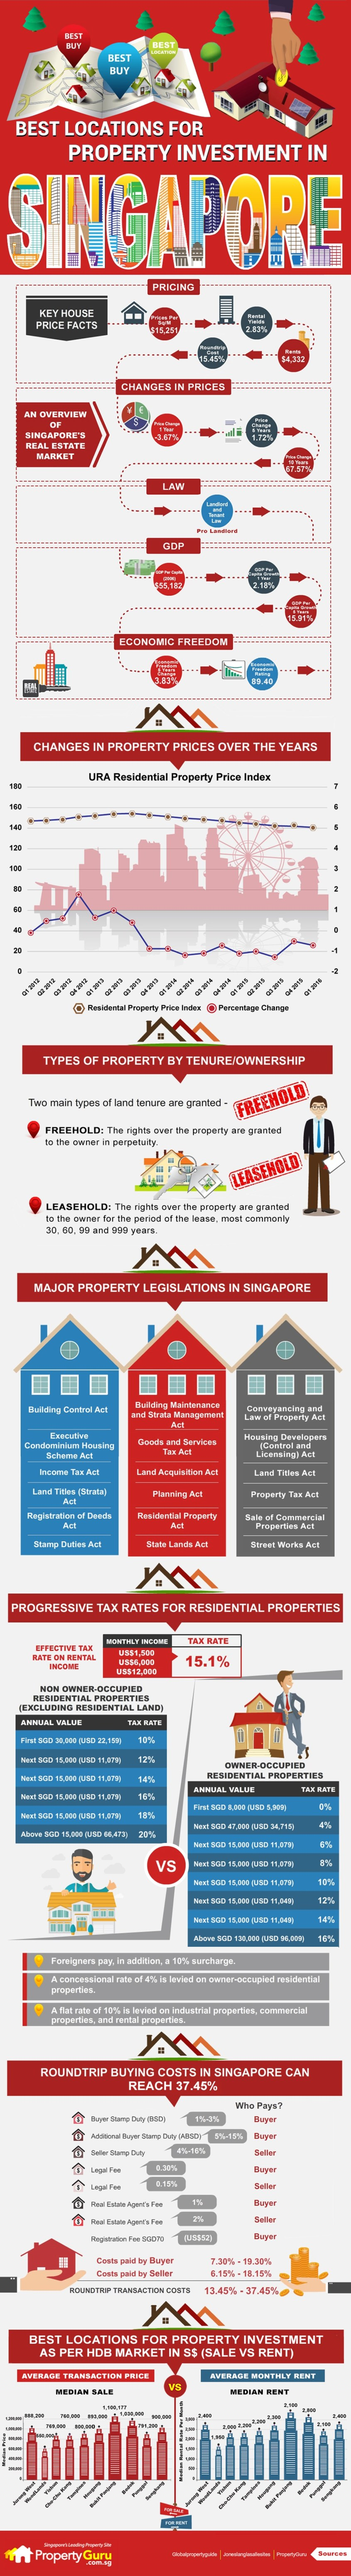 Best-locations-for-property-investment-in-Singapore